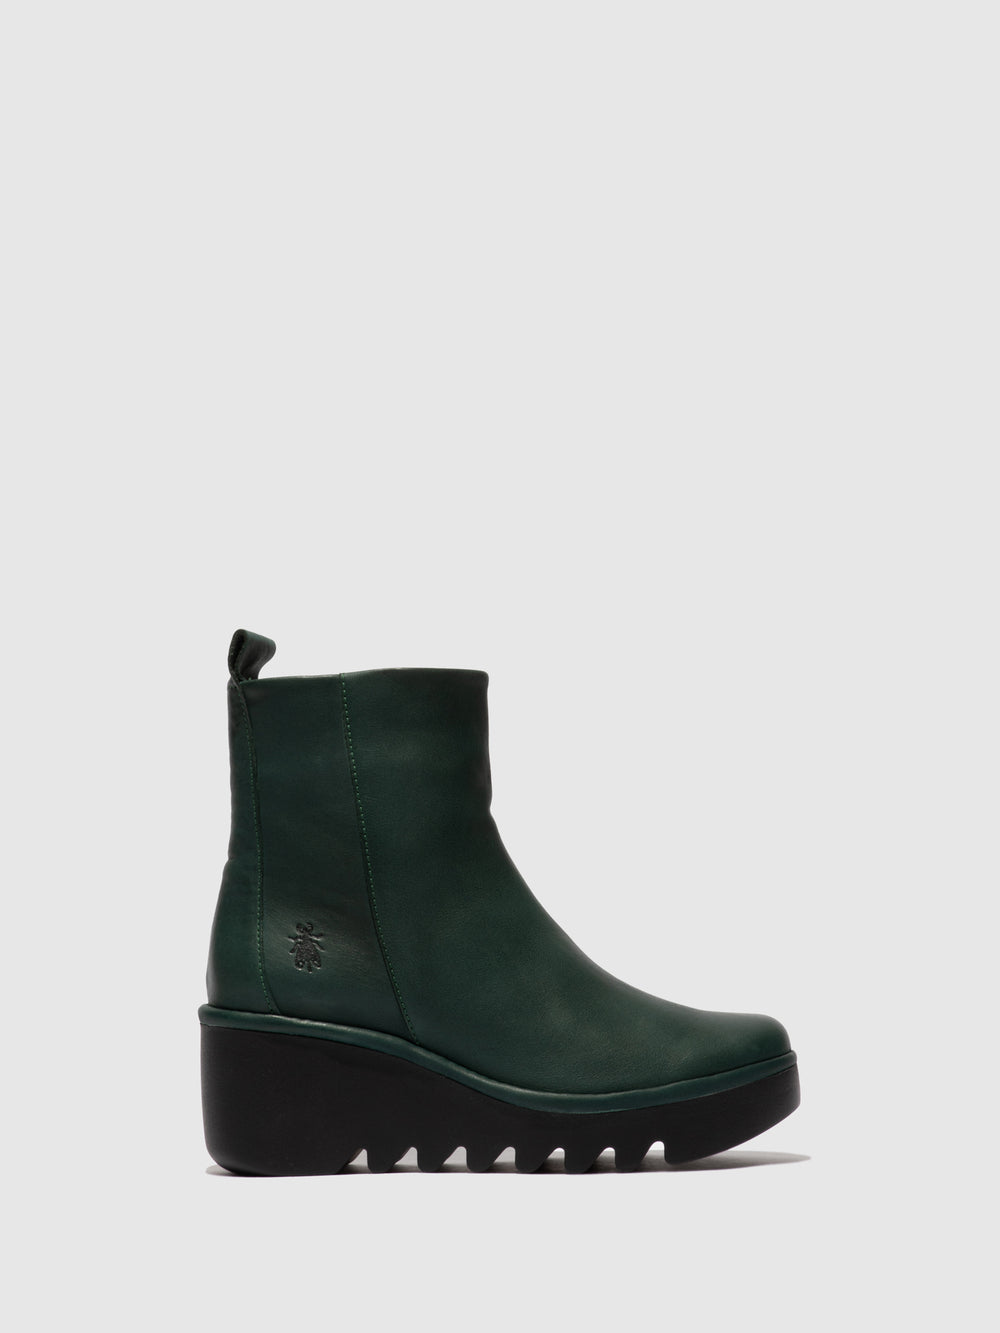 Zip Up Ankle Boots BALE250FLY VERONA GREEN FOREST